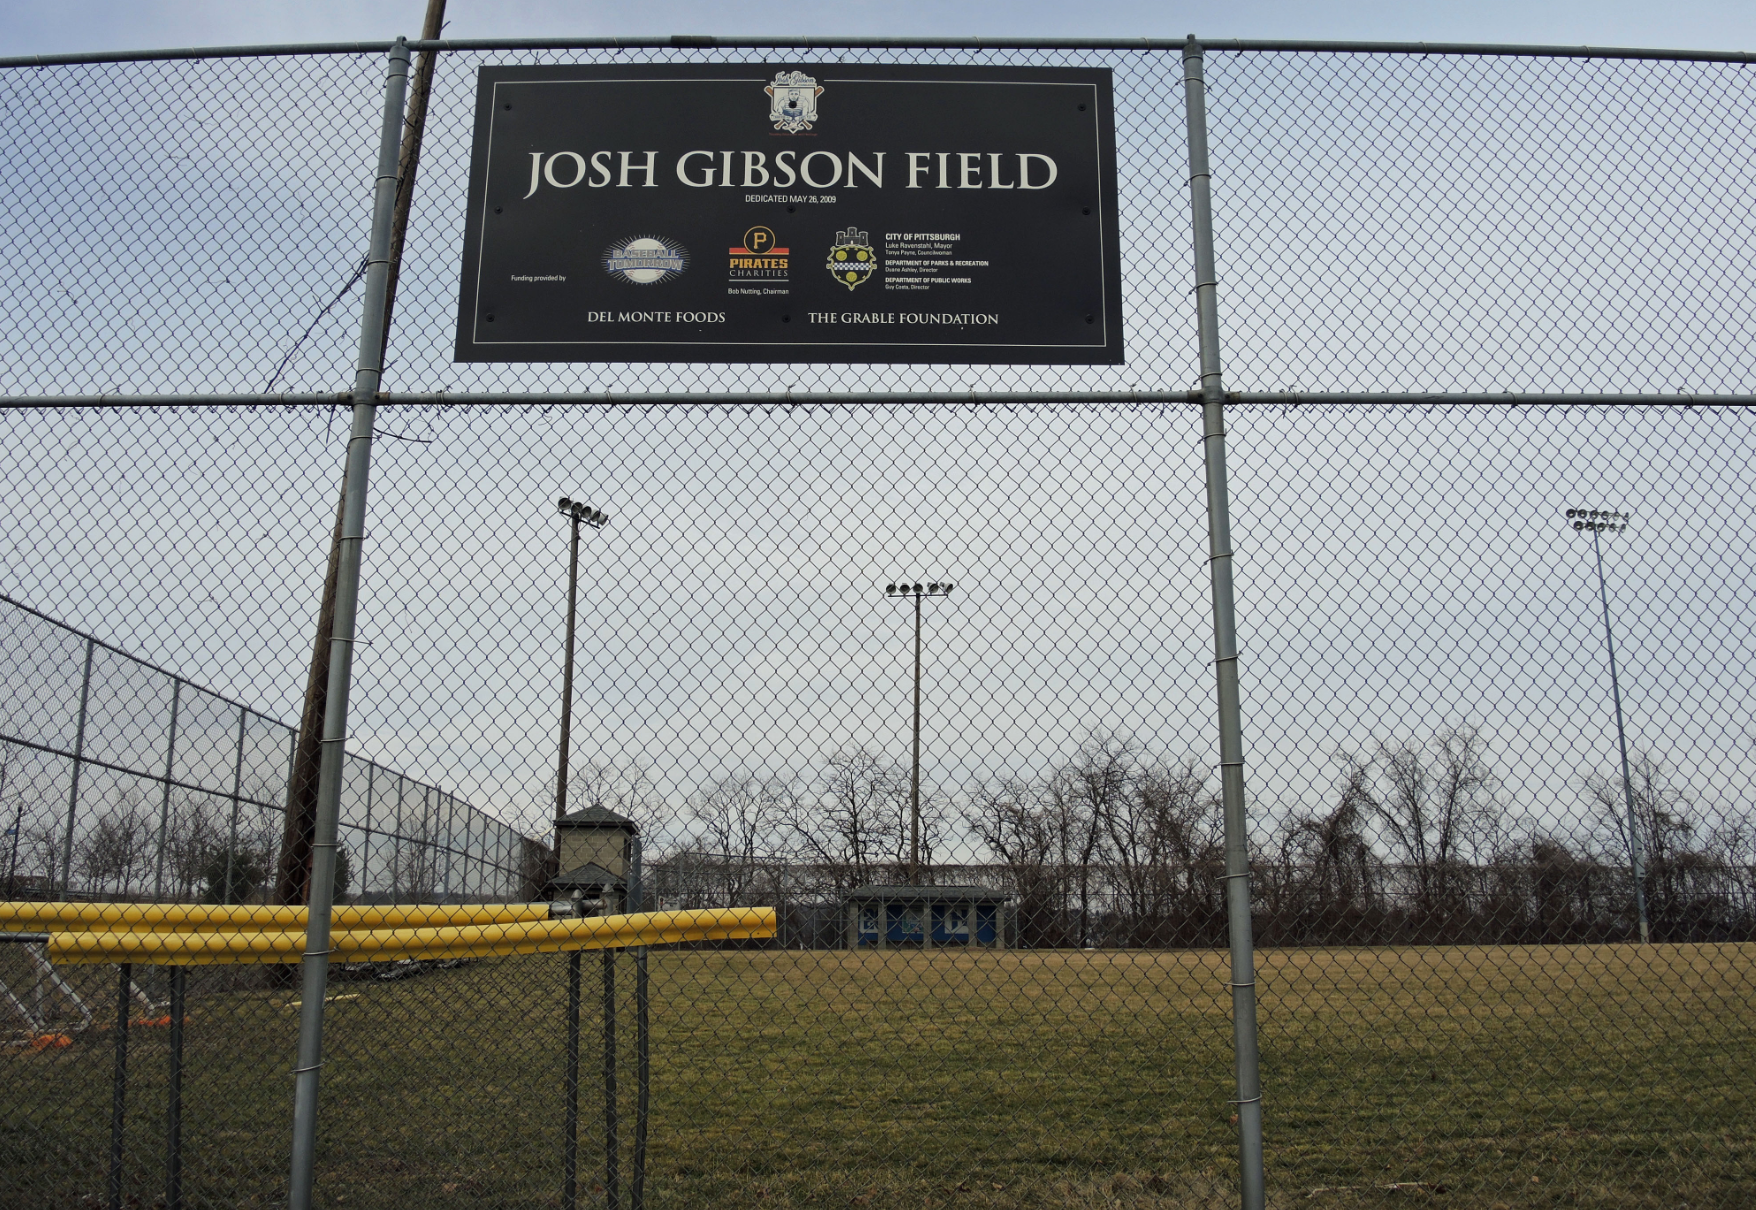 Josh Gibson Field today.